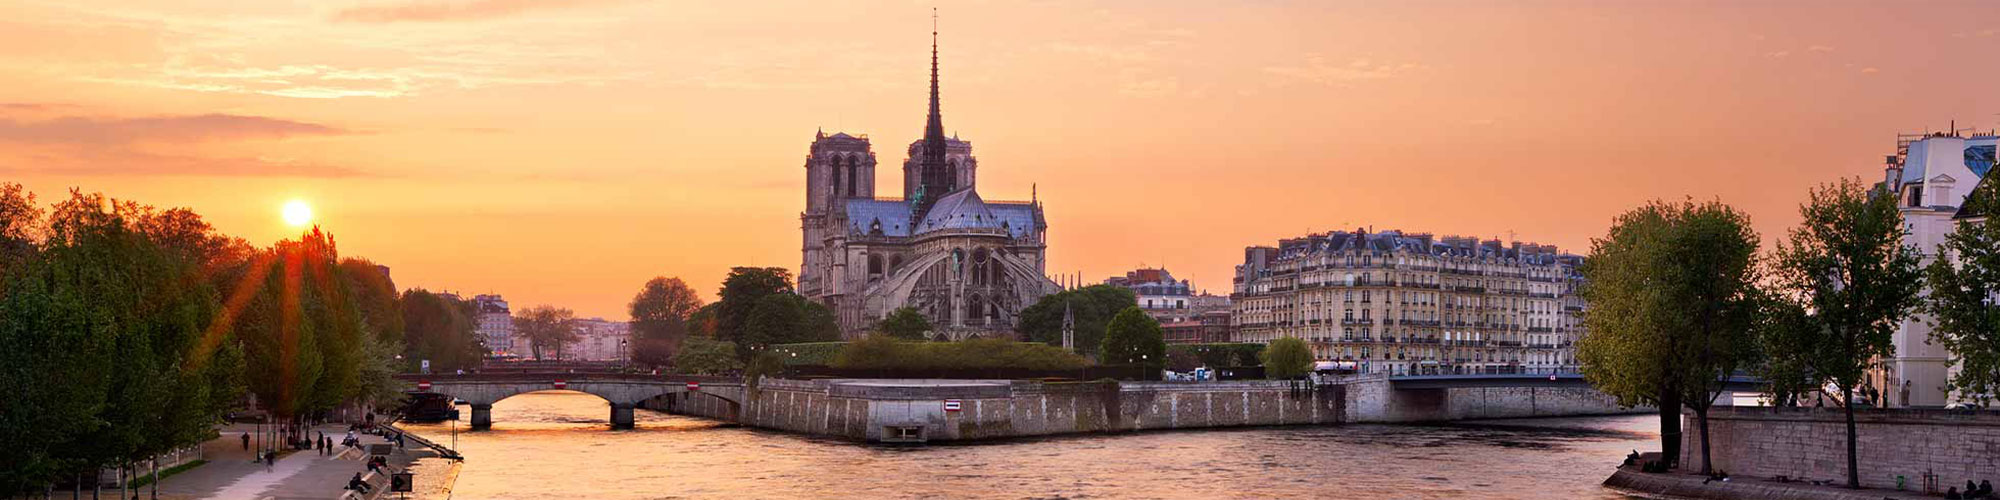 Cruise on the Seine with Bateaux Mouches